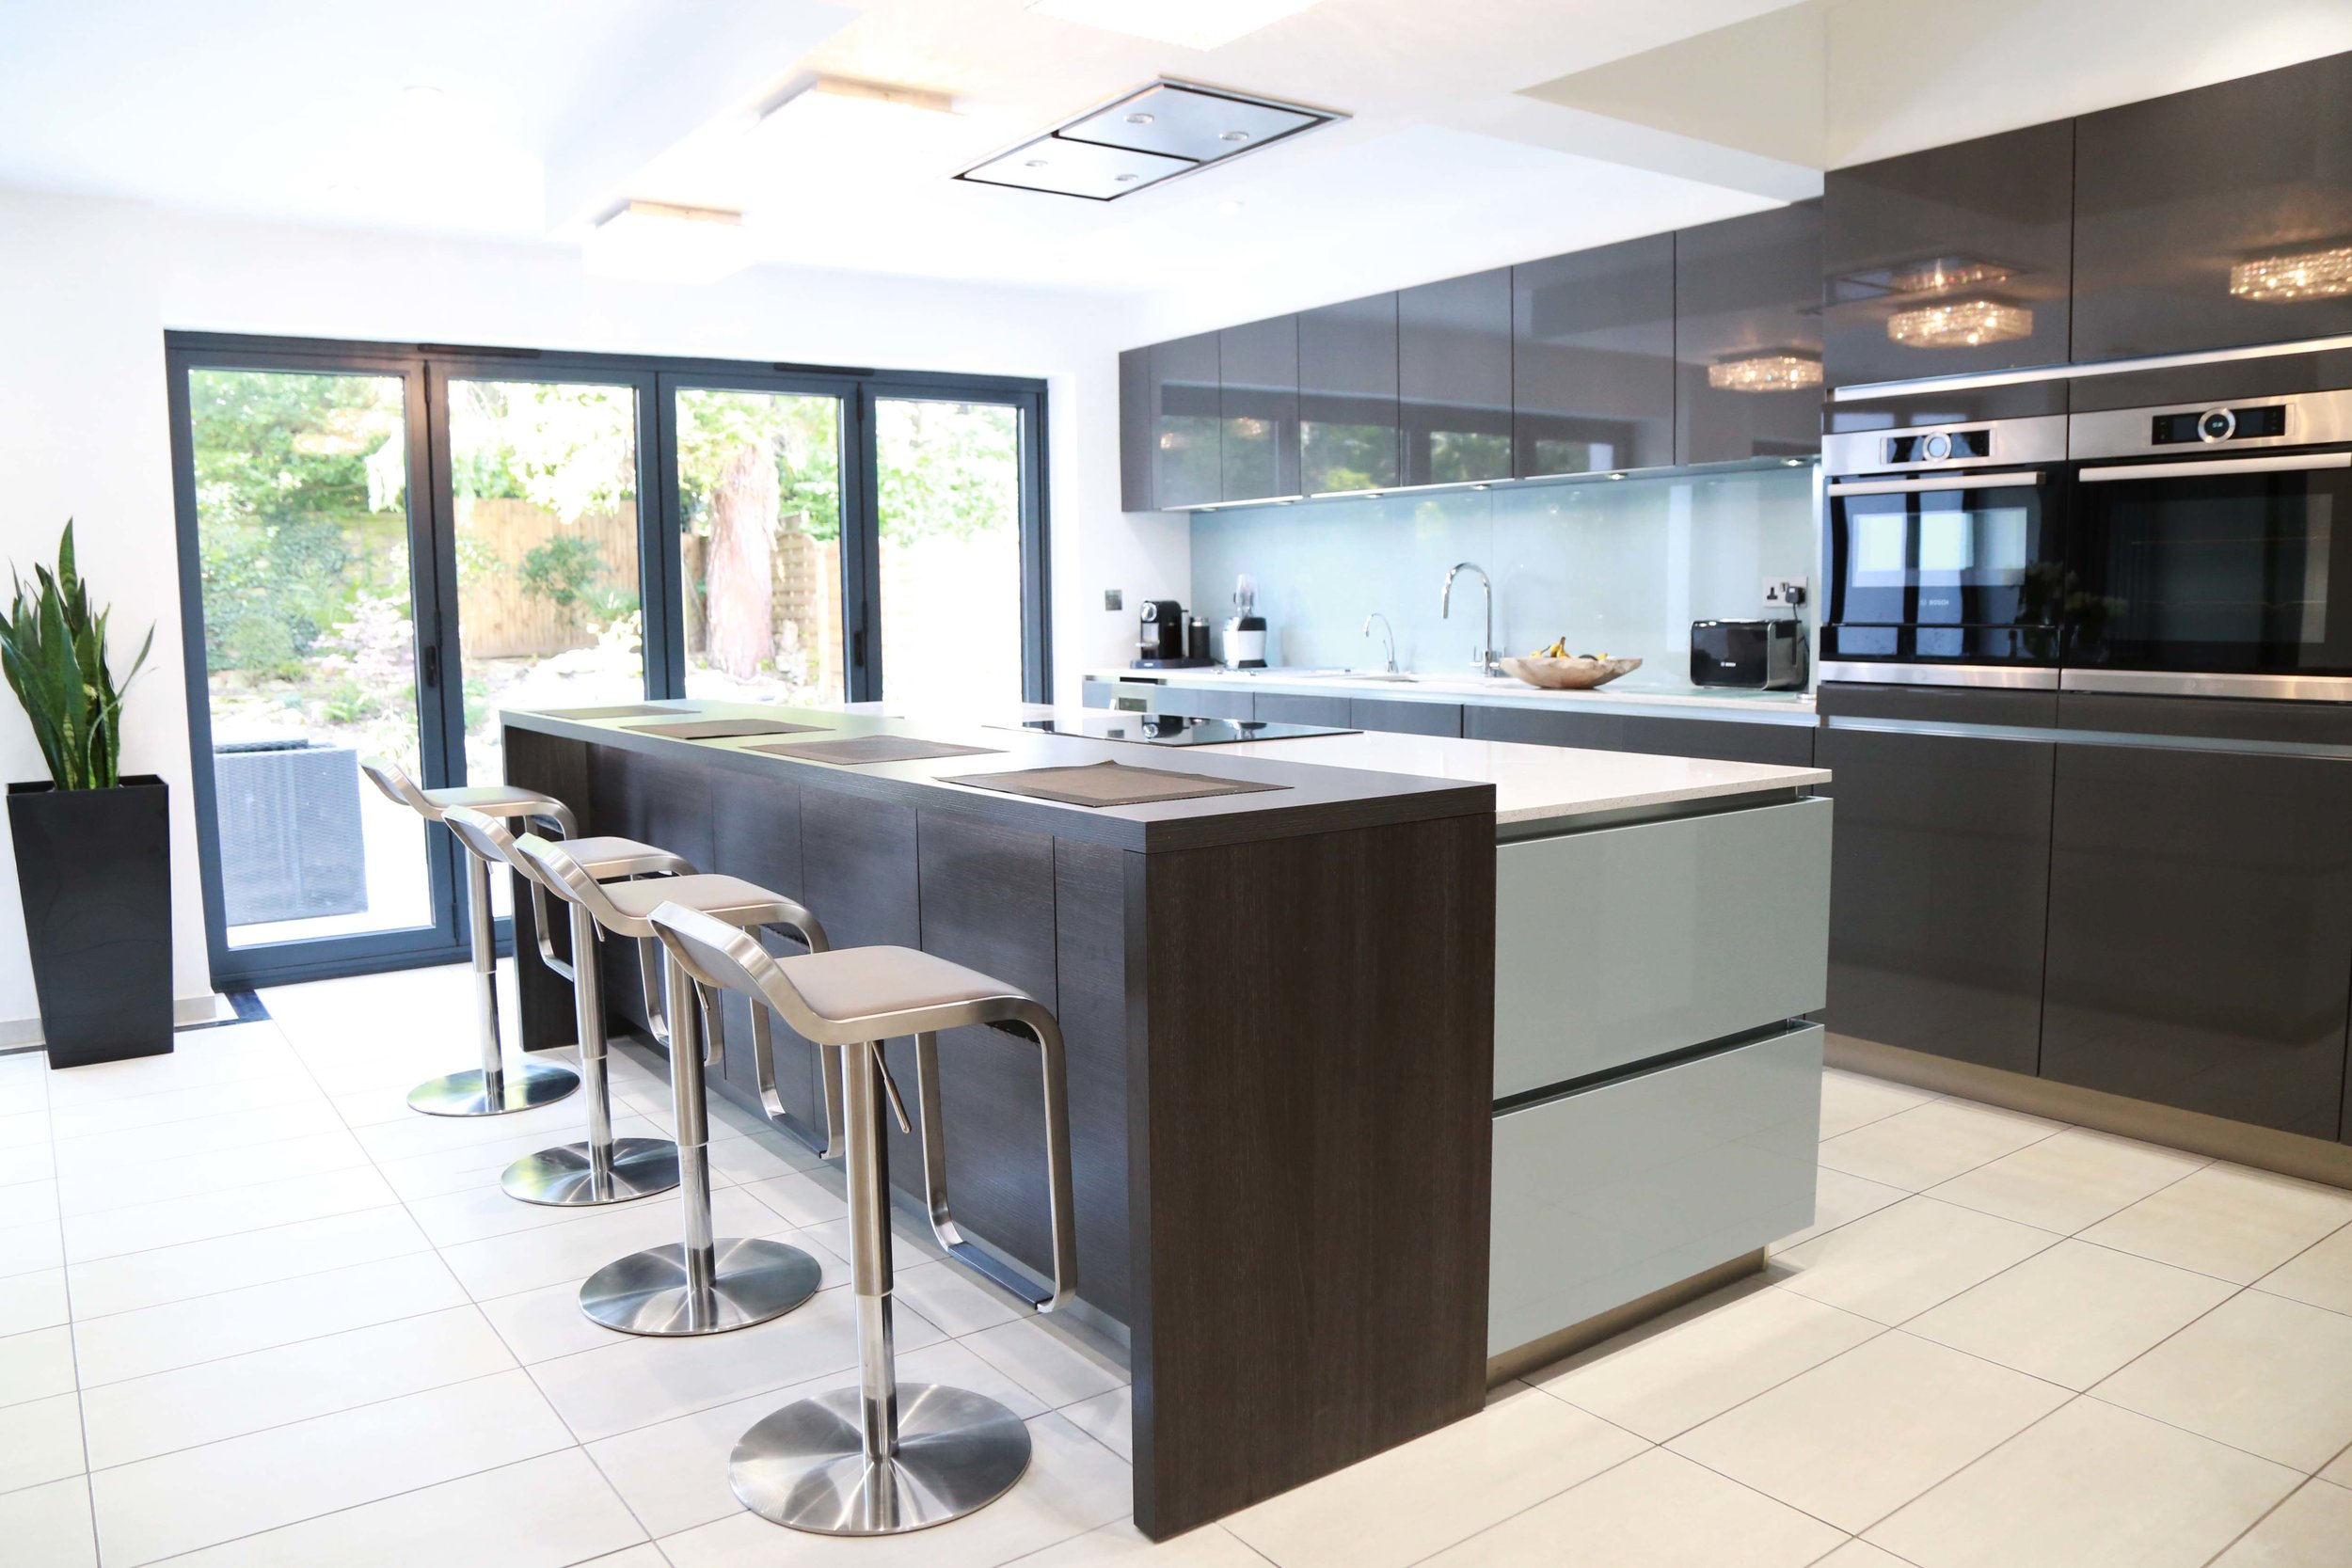 EDGWARE, HA8 - A modern kitchen and feature wall combining Metallic Blue, Anthracite and Terra Oak.